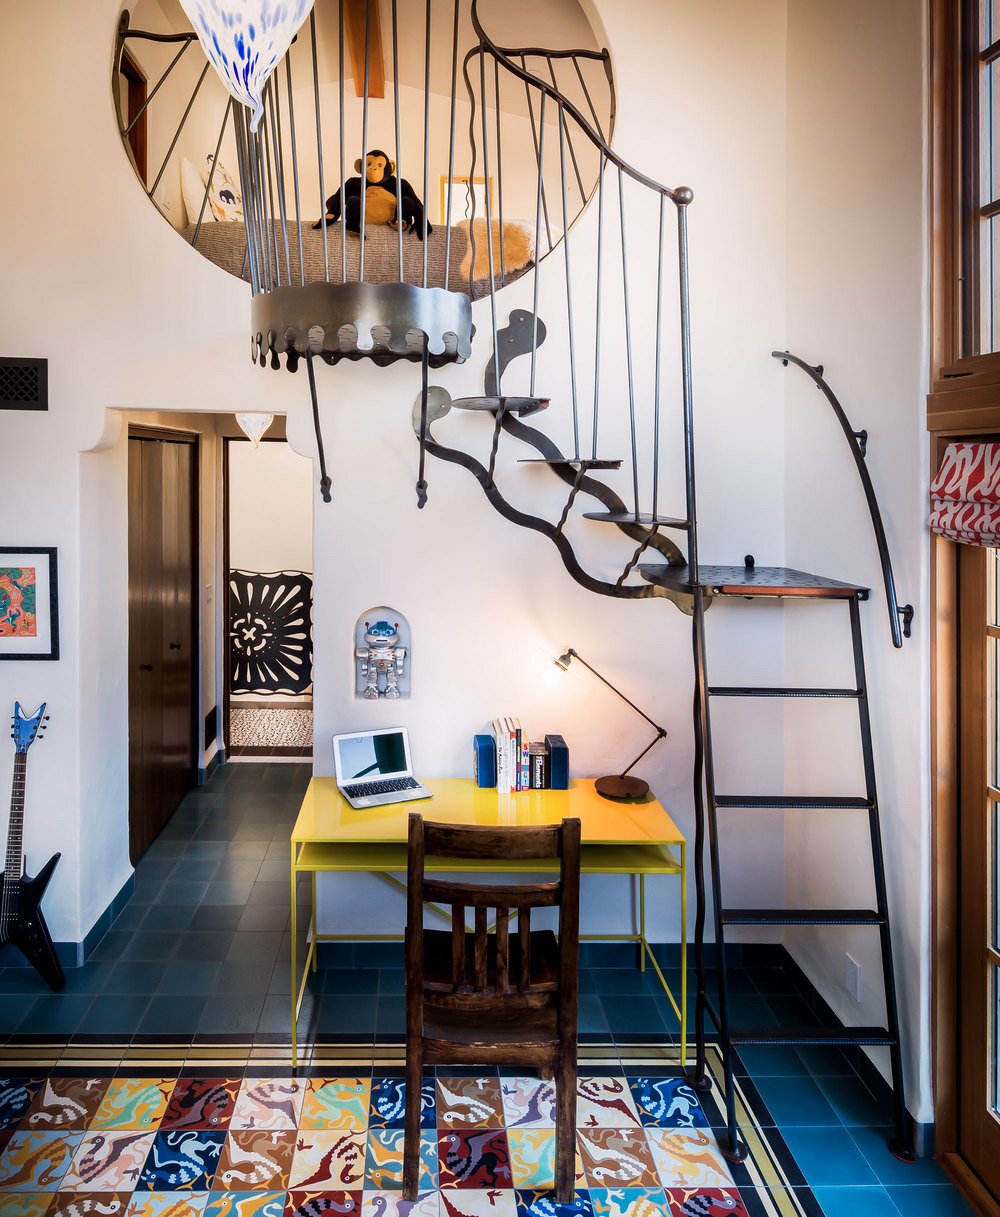 Jeff Shelton, La Roca Interior design workspace